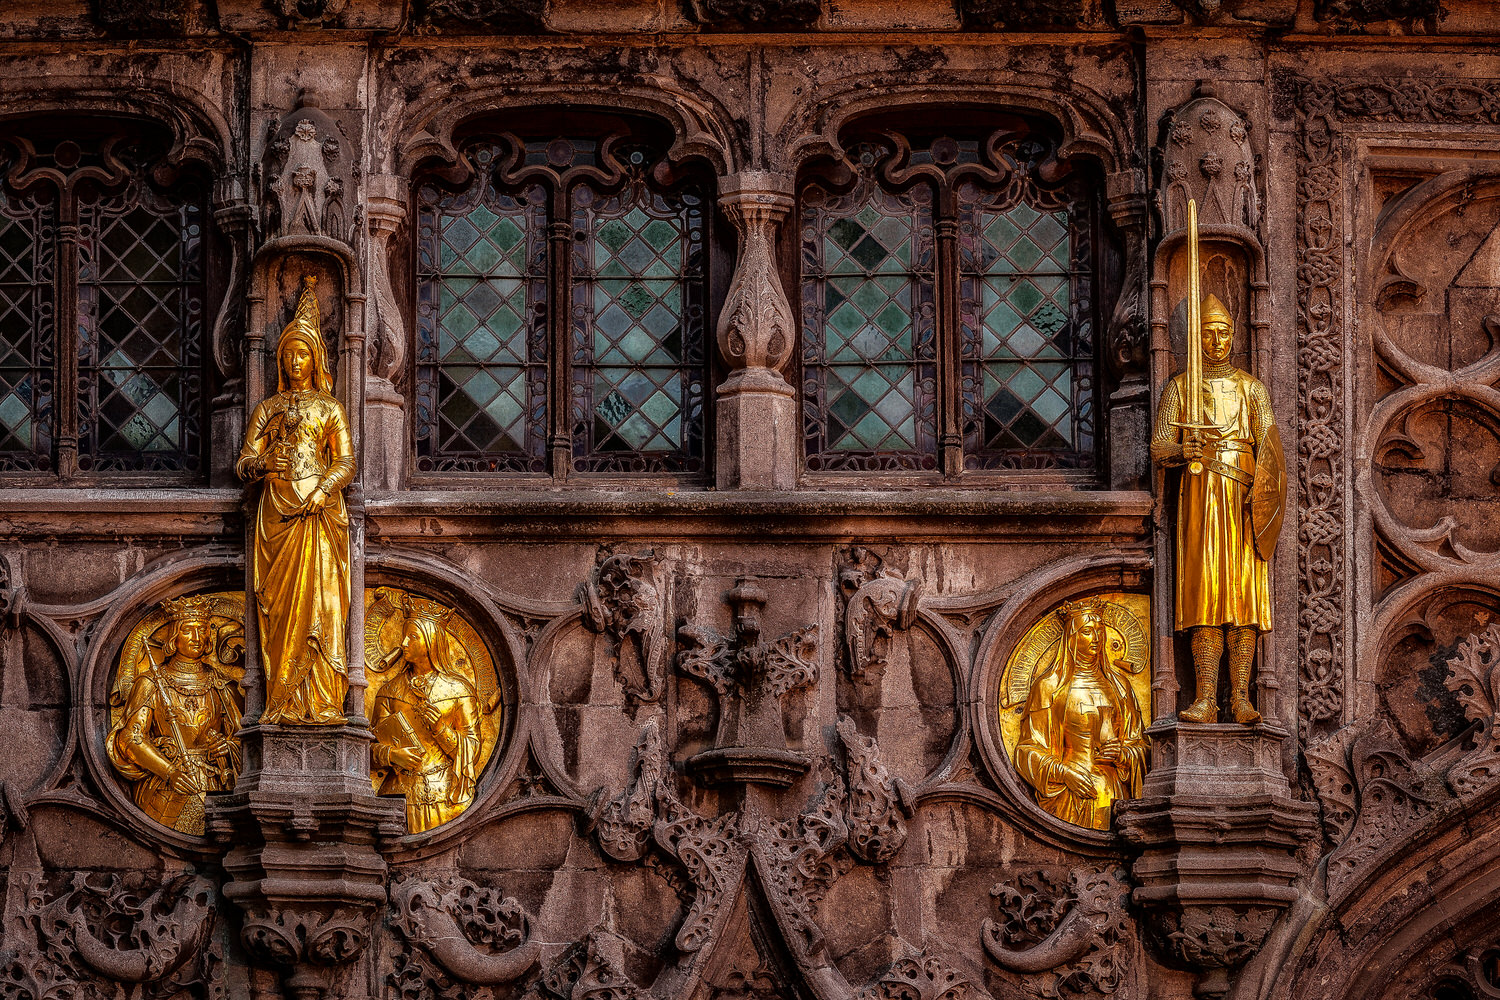 Gold colored figures    decorate the facade of this building in    Bruges, Belgium   .